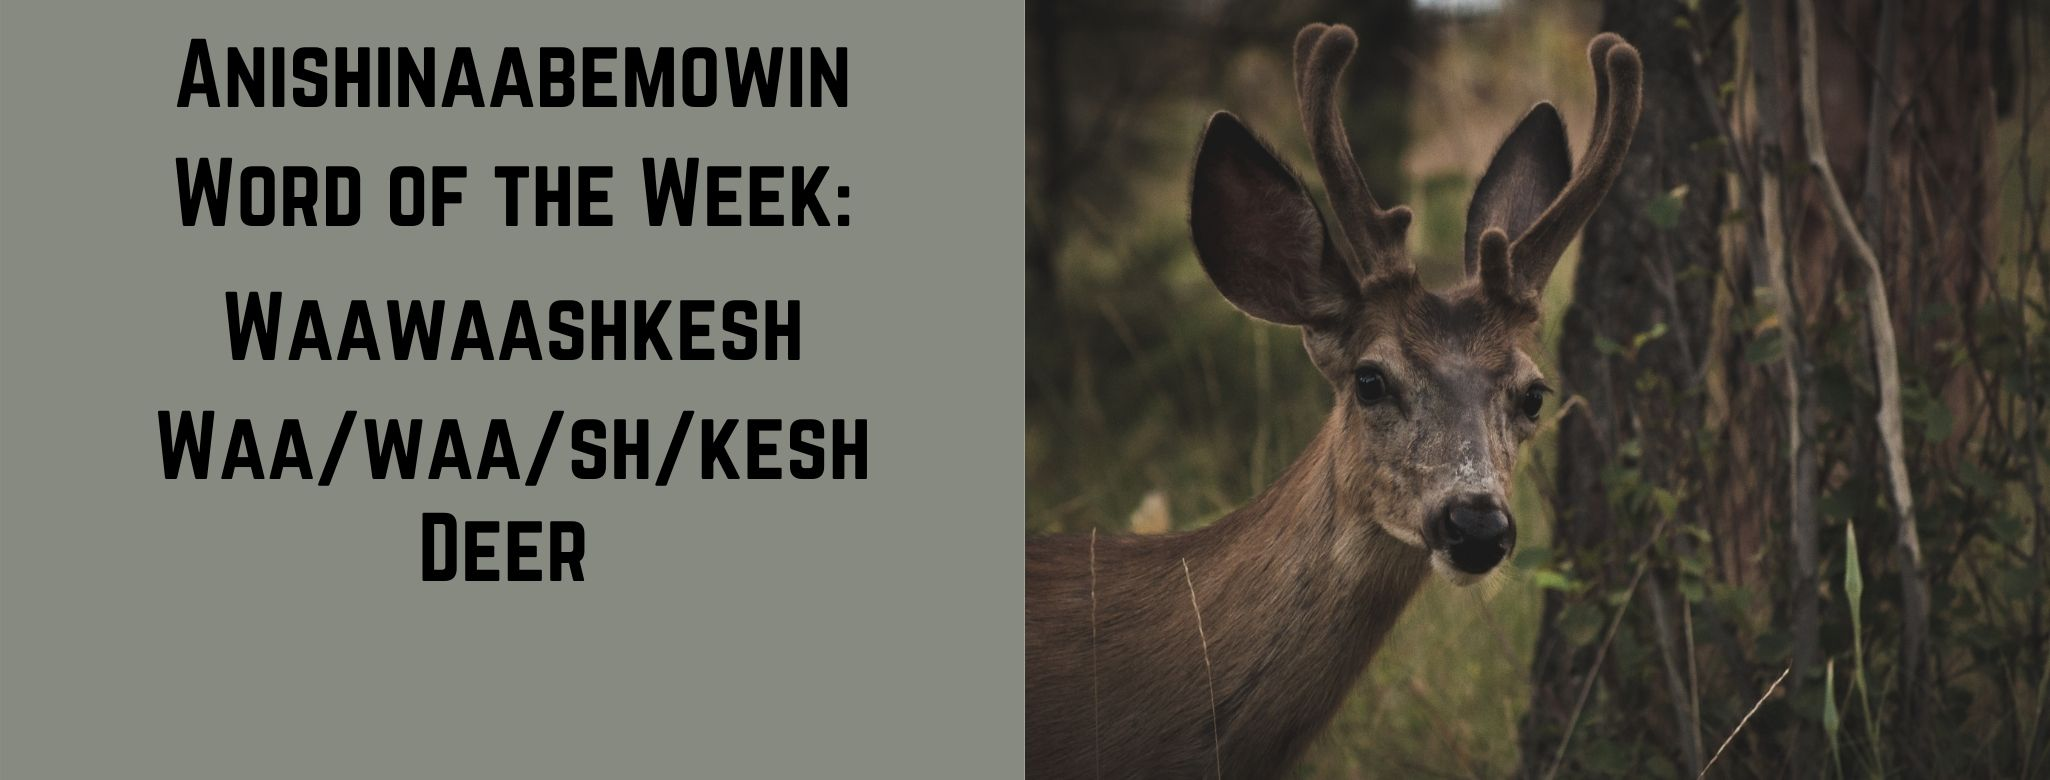 Anishinaabemowin word of the week Waawaashkesh Deer